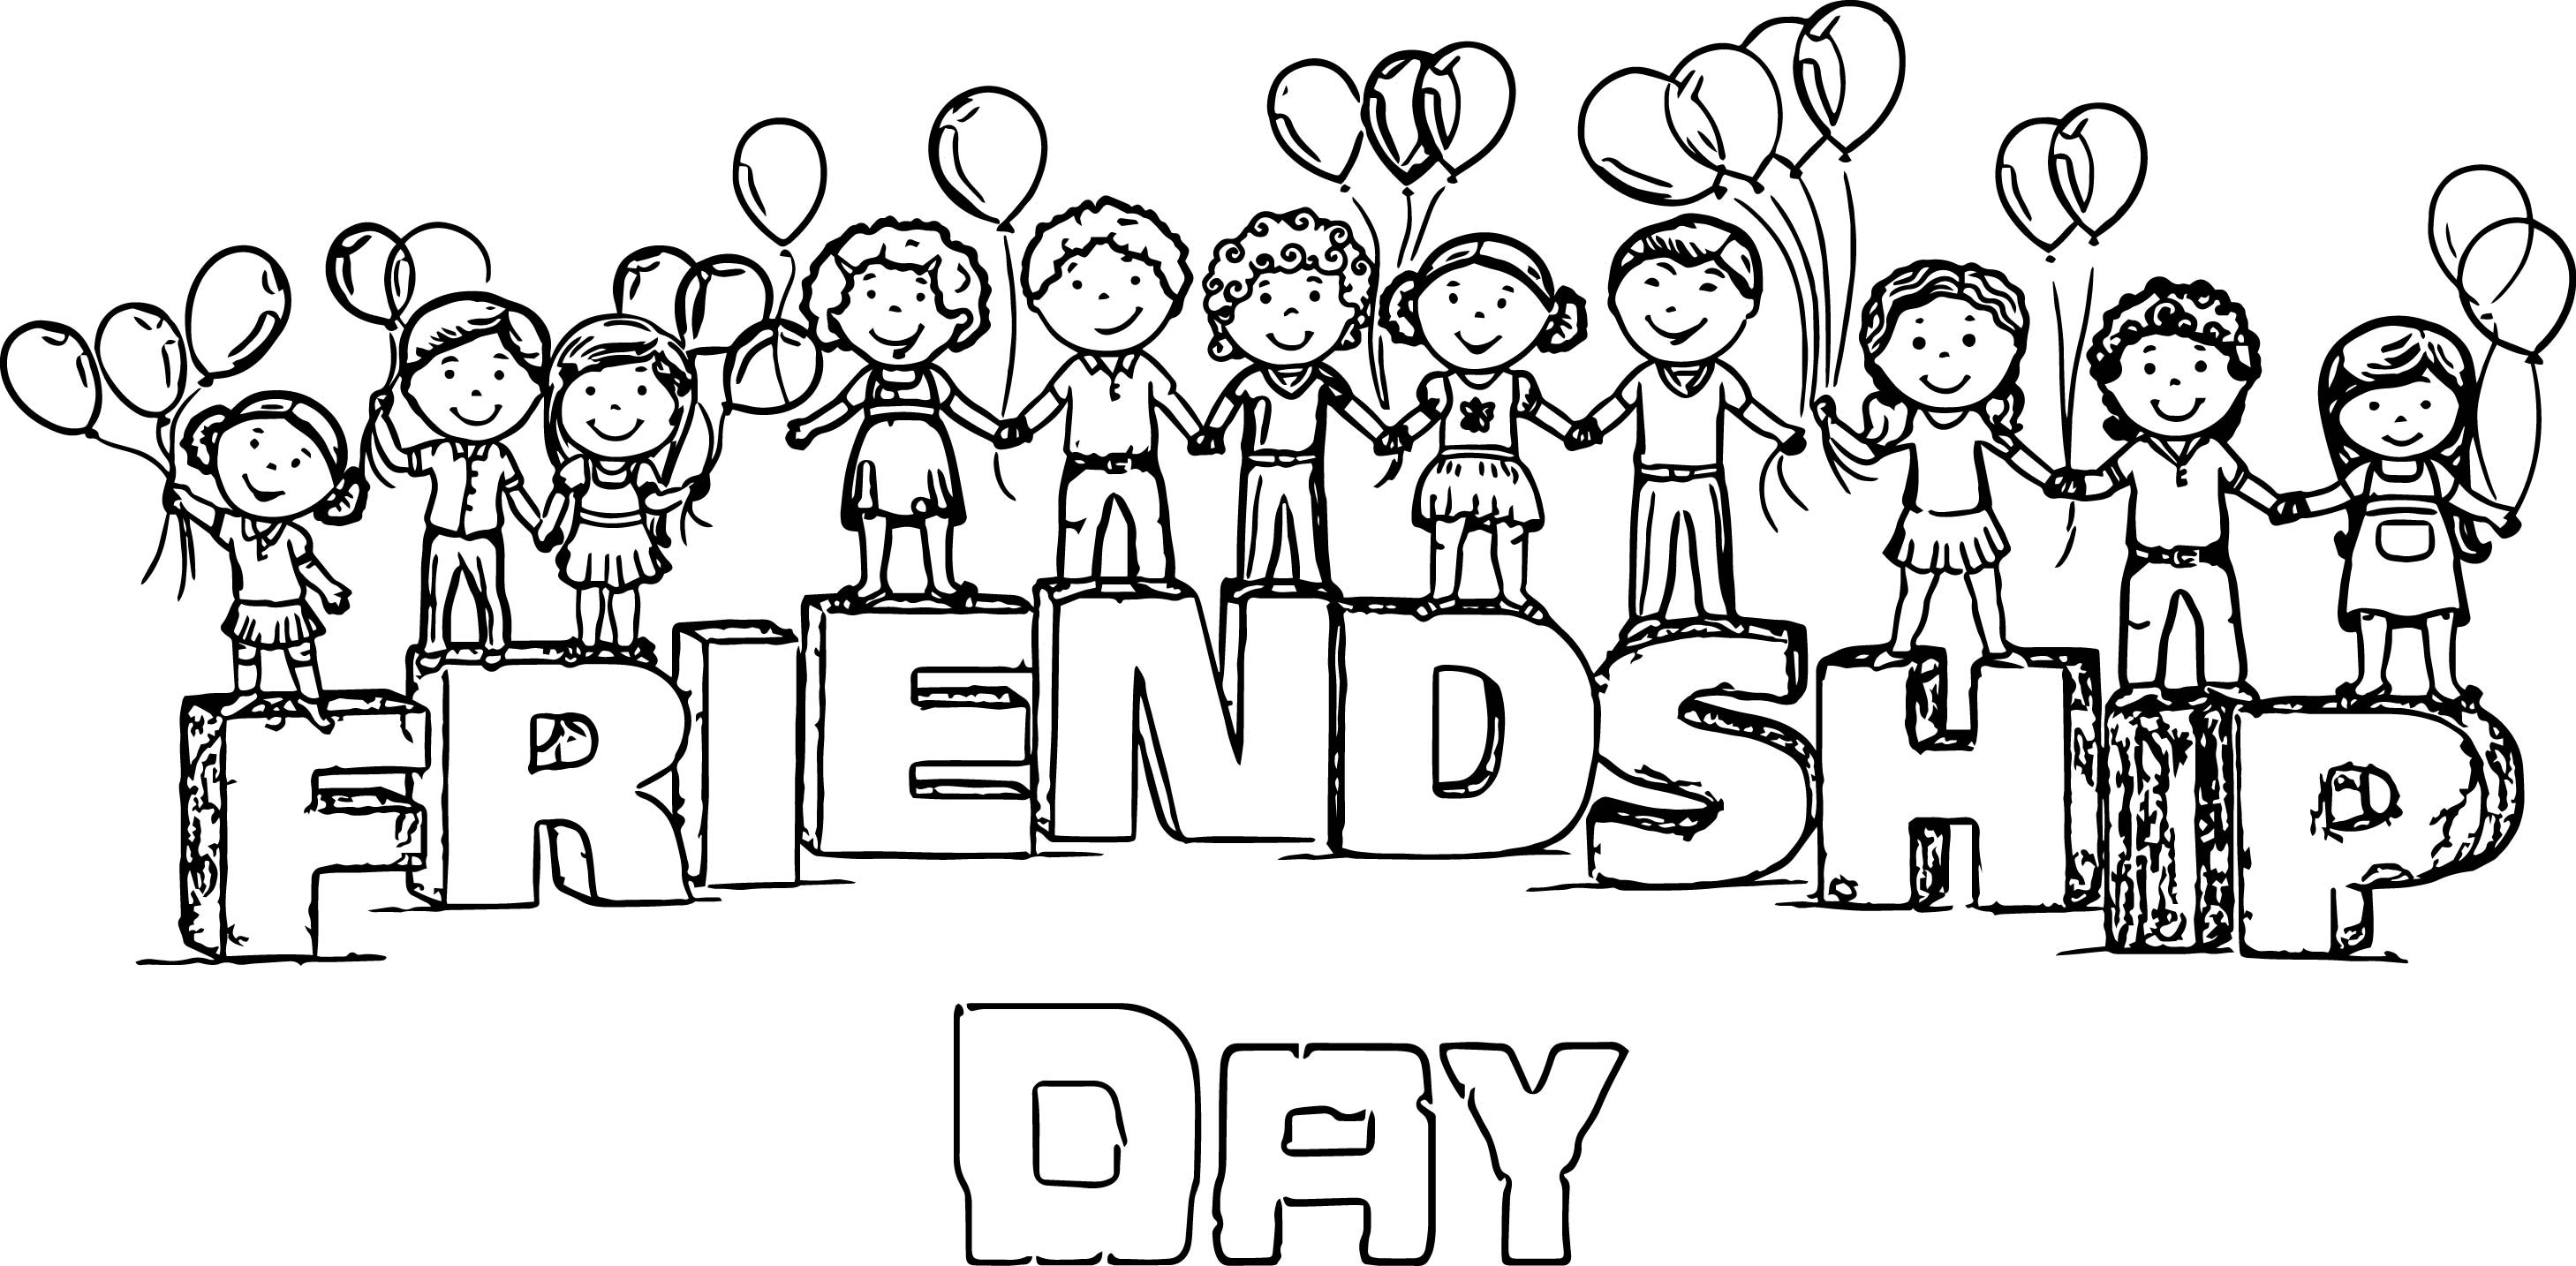 - Happy Friendship Day Images For My Beautiful Friends Coloring Page